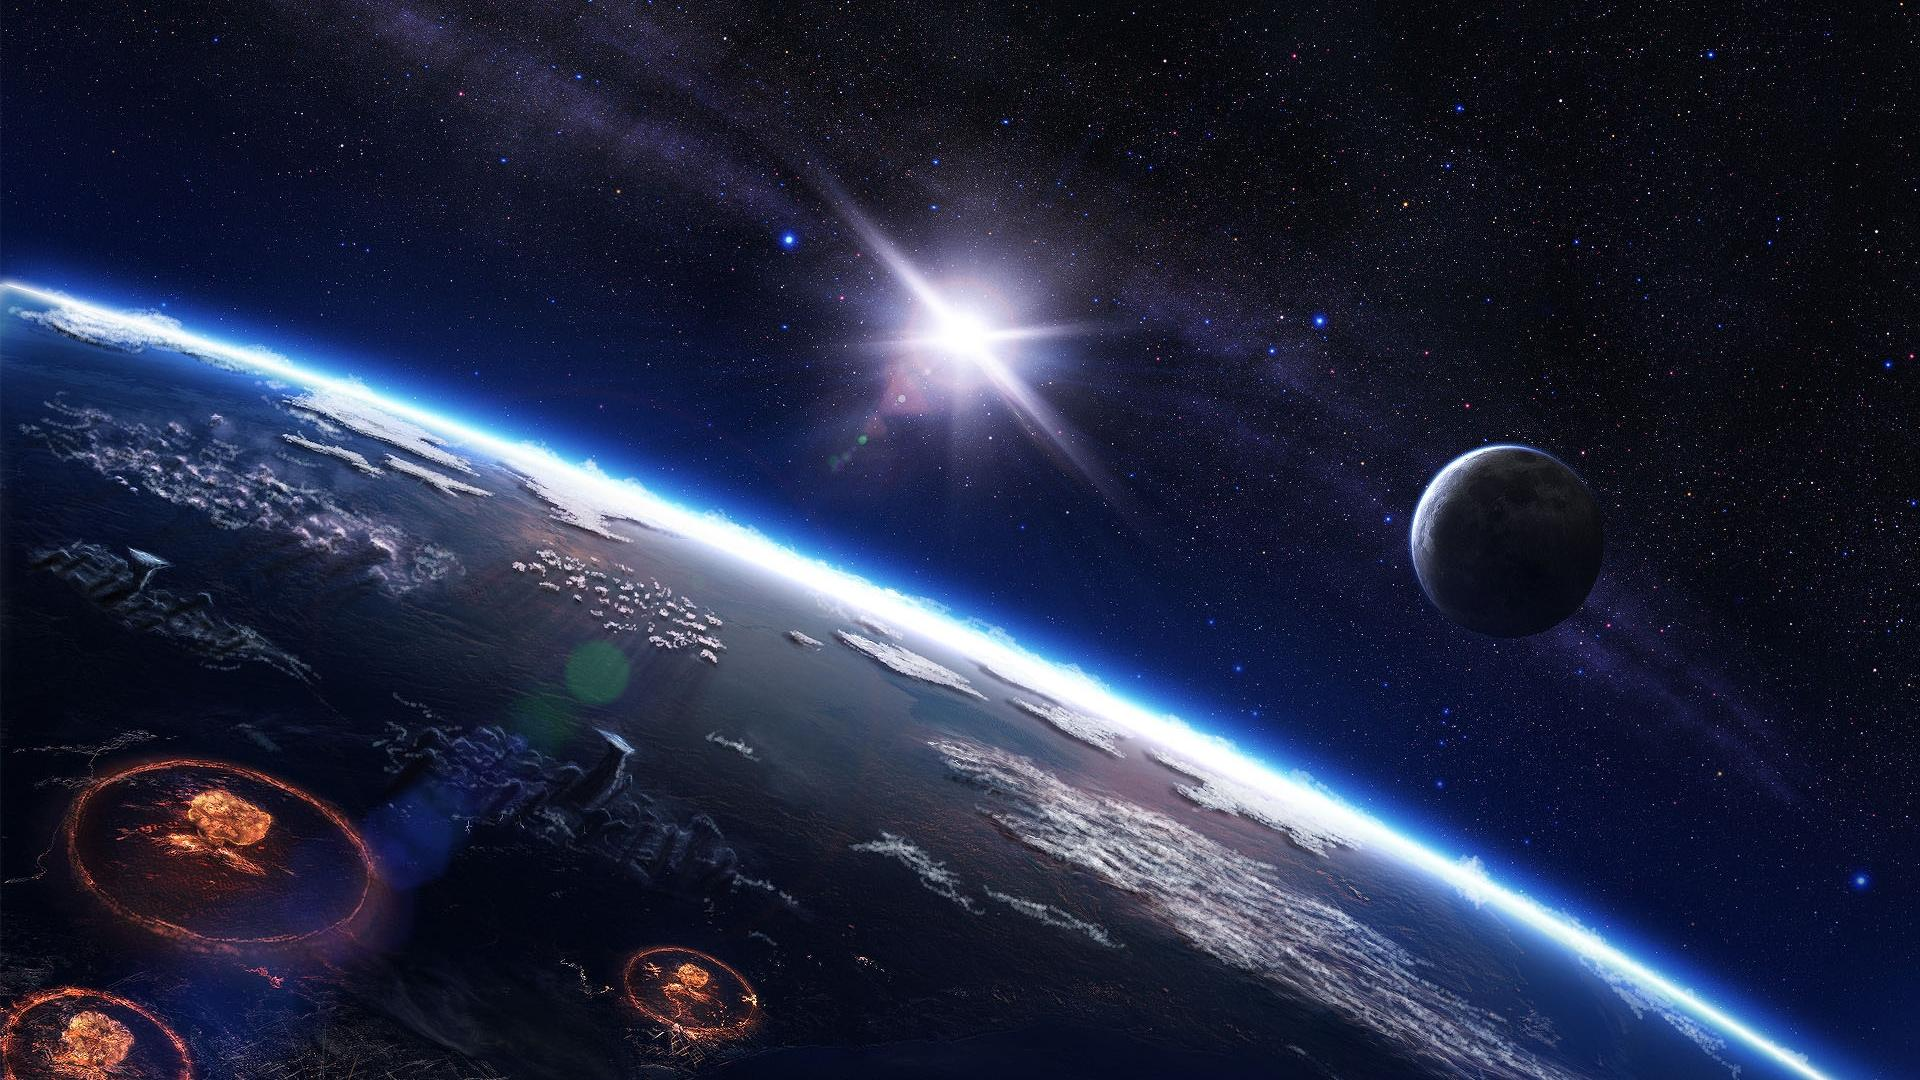 Wallpaper 1 of 1   Out In Space HD Planets Photos HD Wallpapers 1920x1080